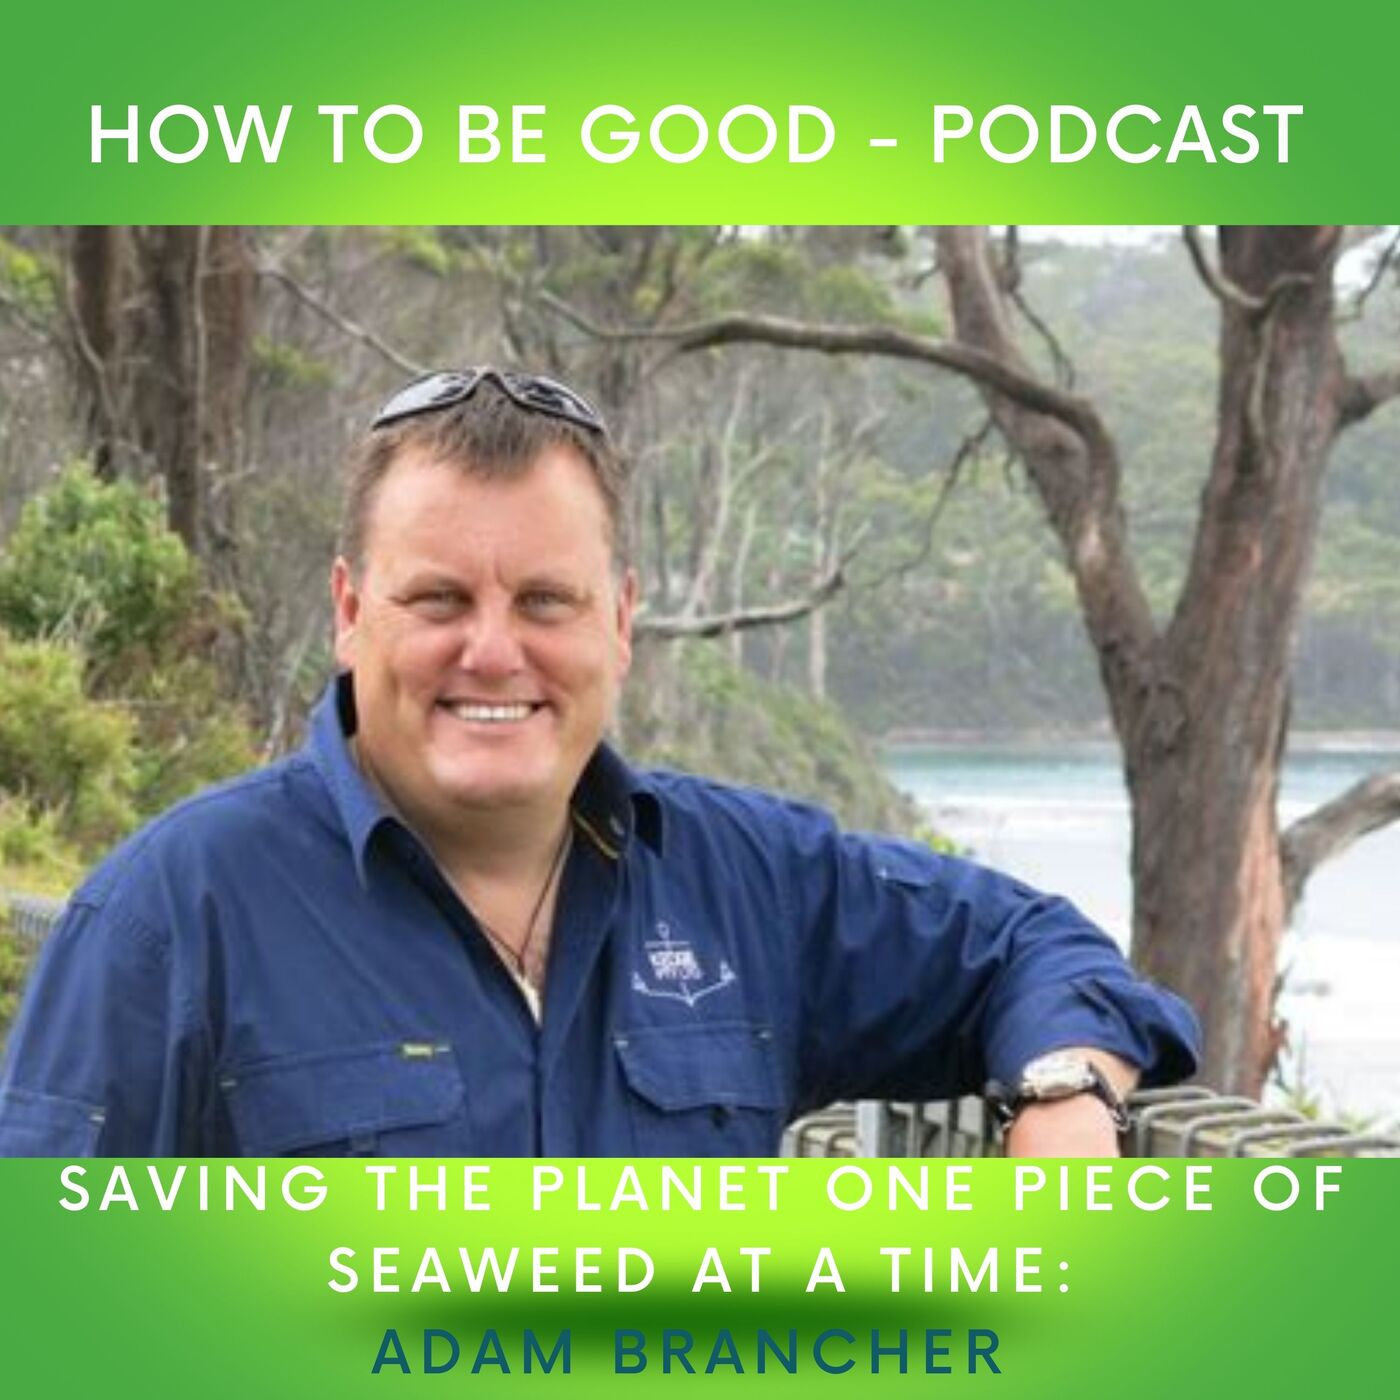 Saving the planet one piece of seaweed at a time: Adam Brancher from Southern Ocean Carbon Company talks sequestration